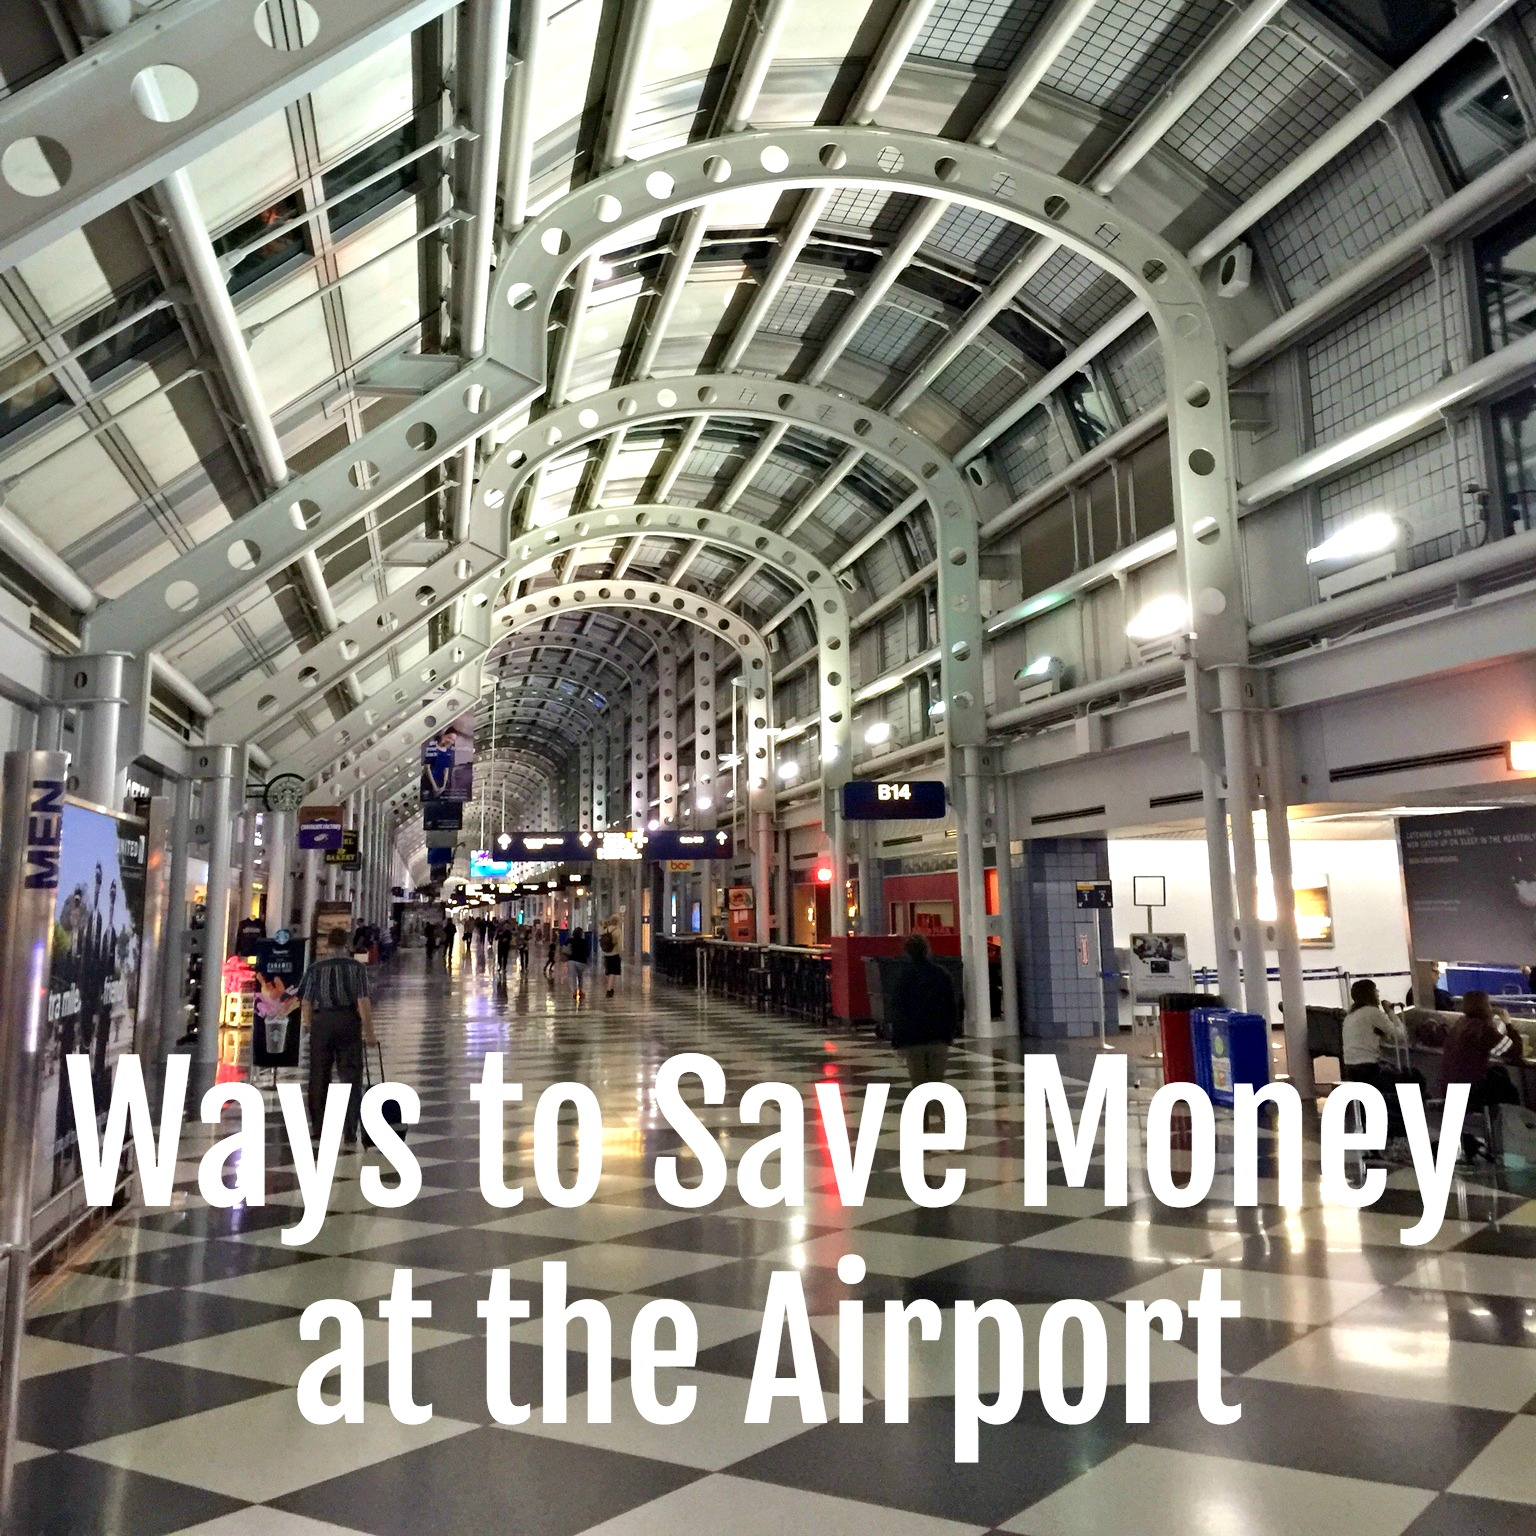 Ways to Save Money When Traveling - At The Airport